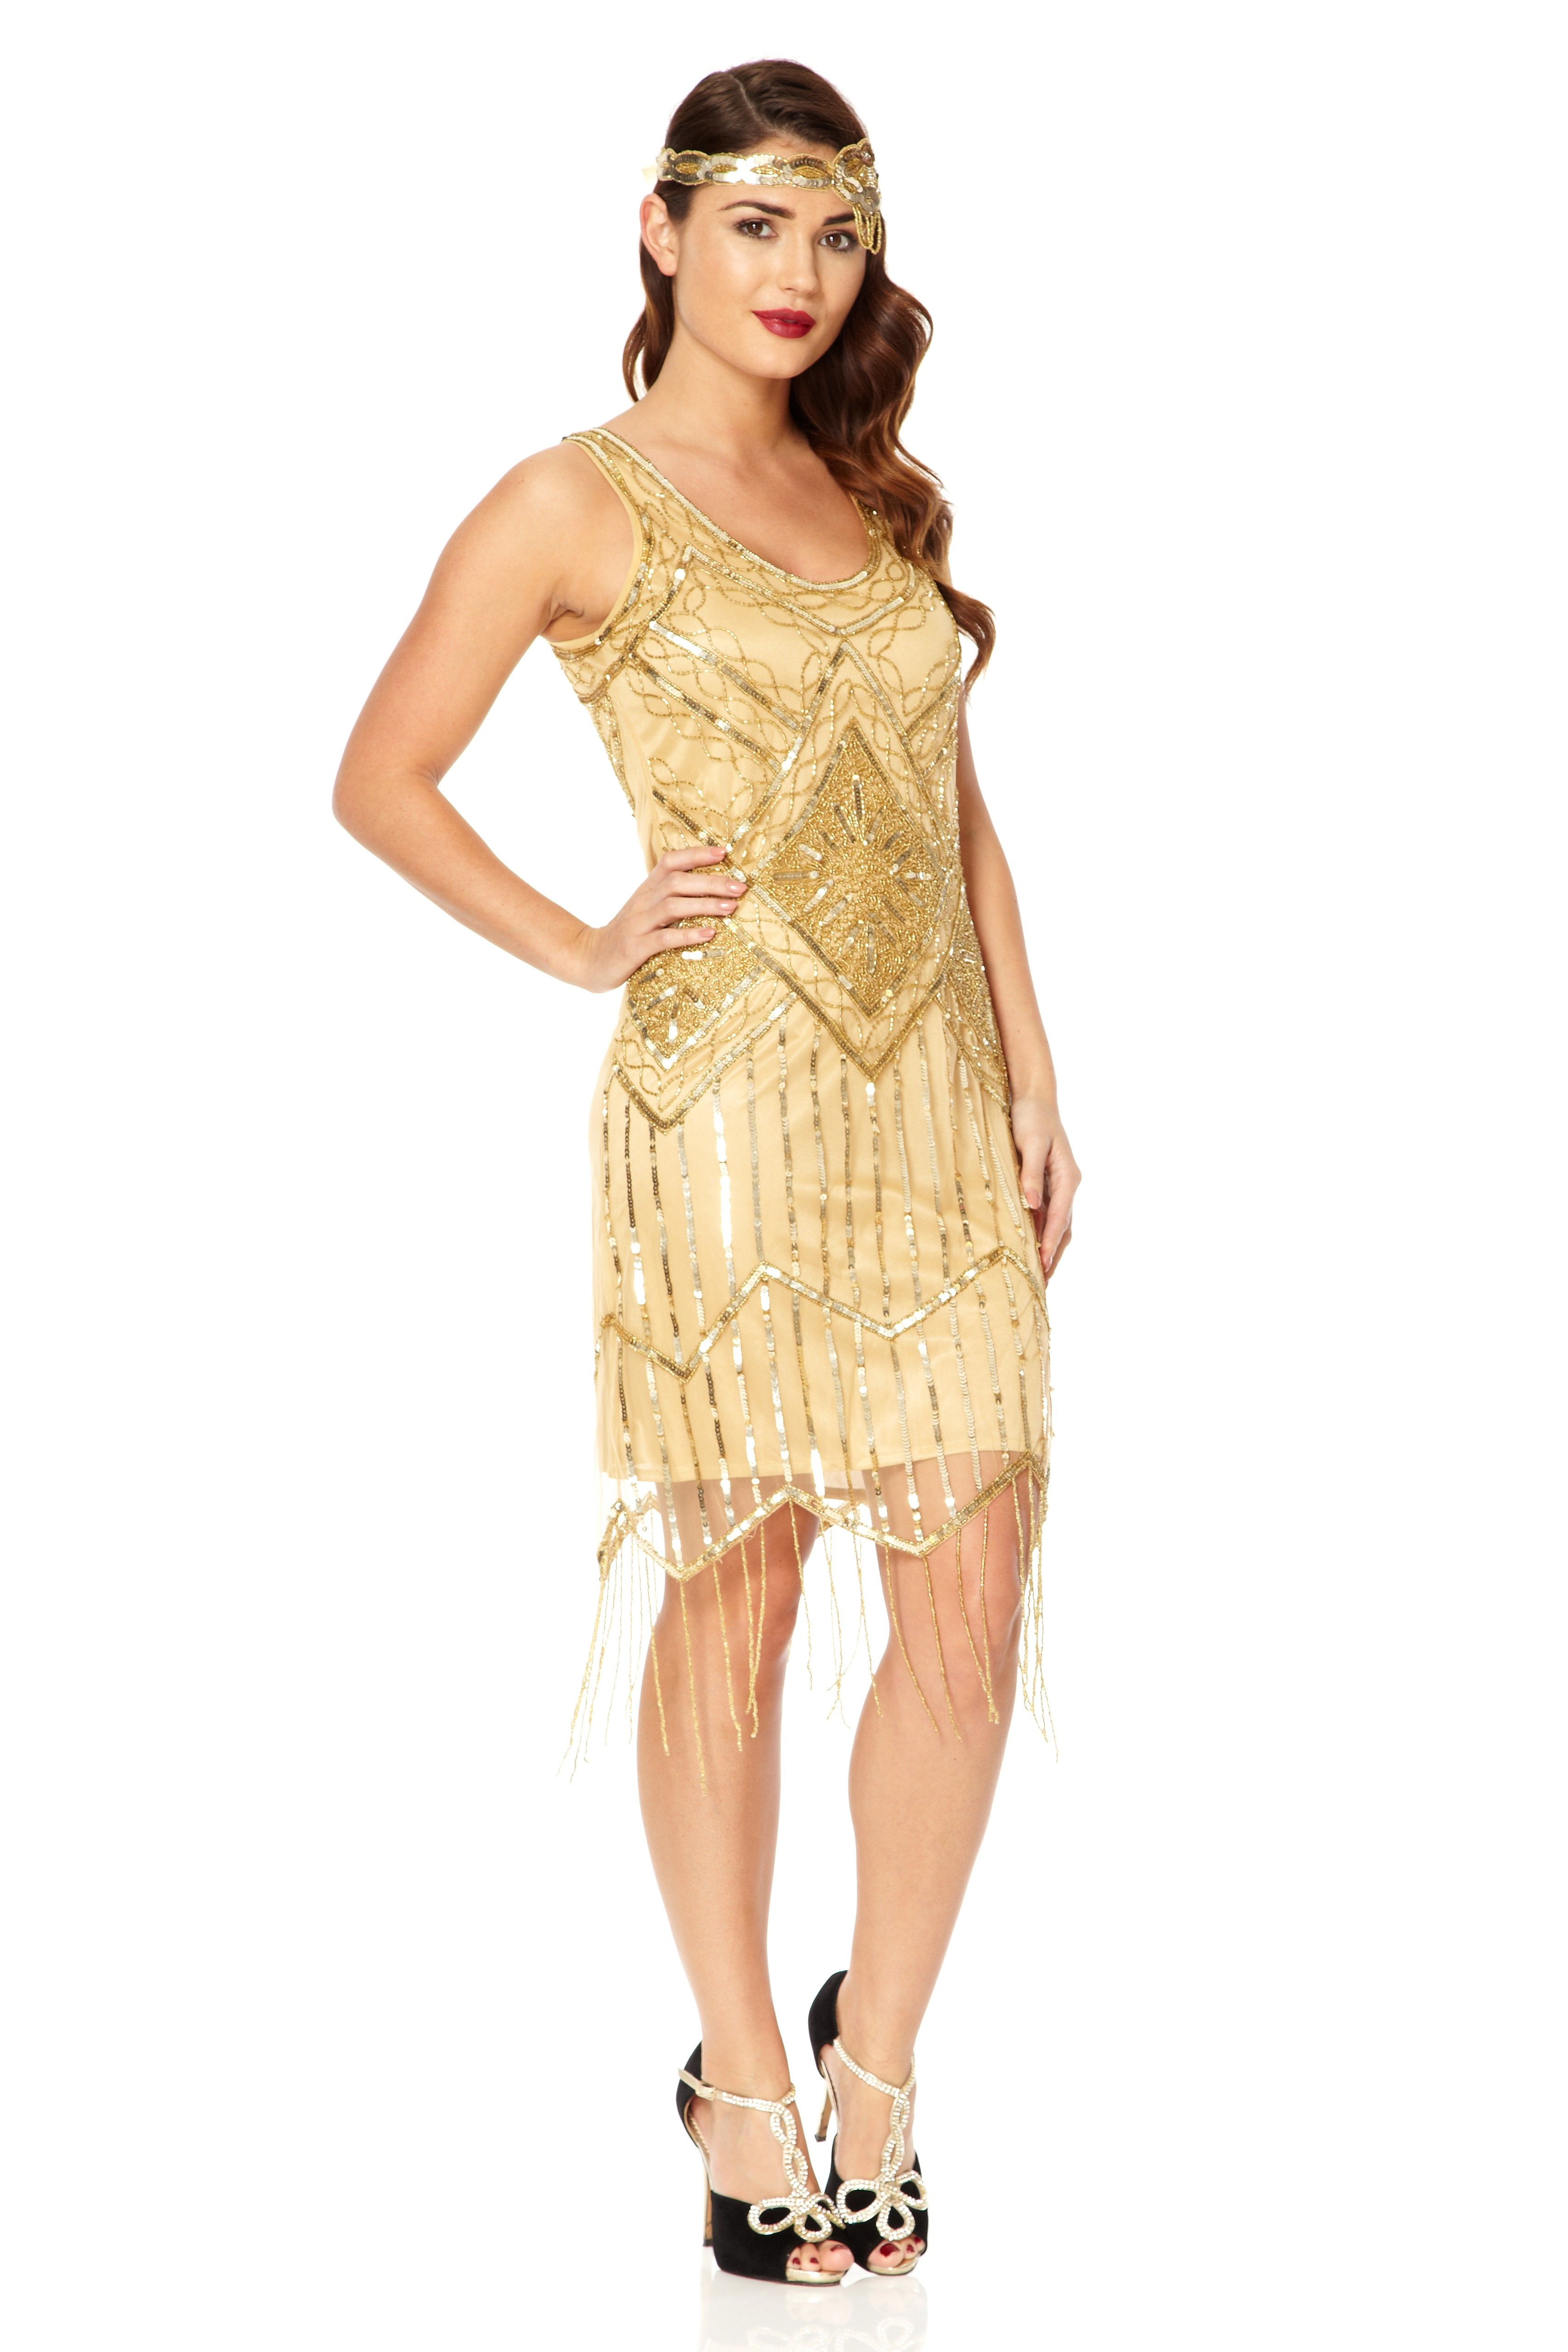 0133f268acfd9 GOLD VINTAGE INSPIRED 1920S VIBE FLAPPER GREAT GATSBY BEADED CHARLESTON  SEQUIN ART DECO WEDDING FRINGE DRESS NEW HAND MADE | USTrendy